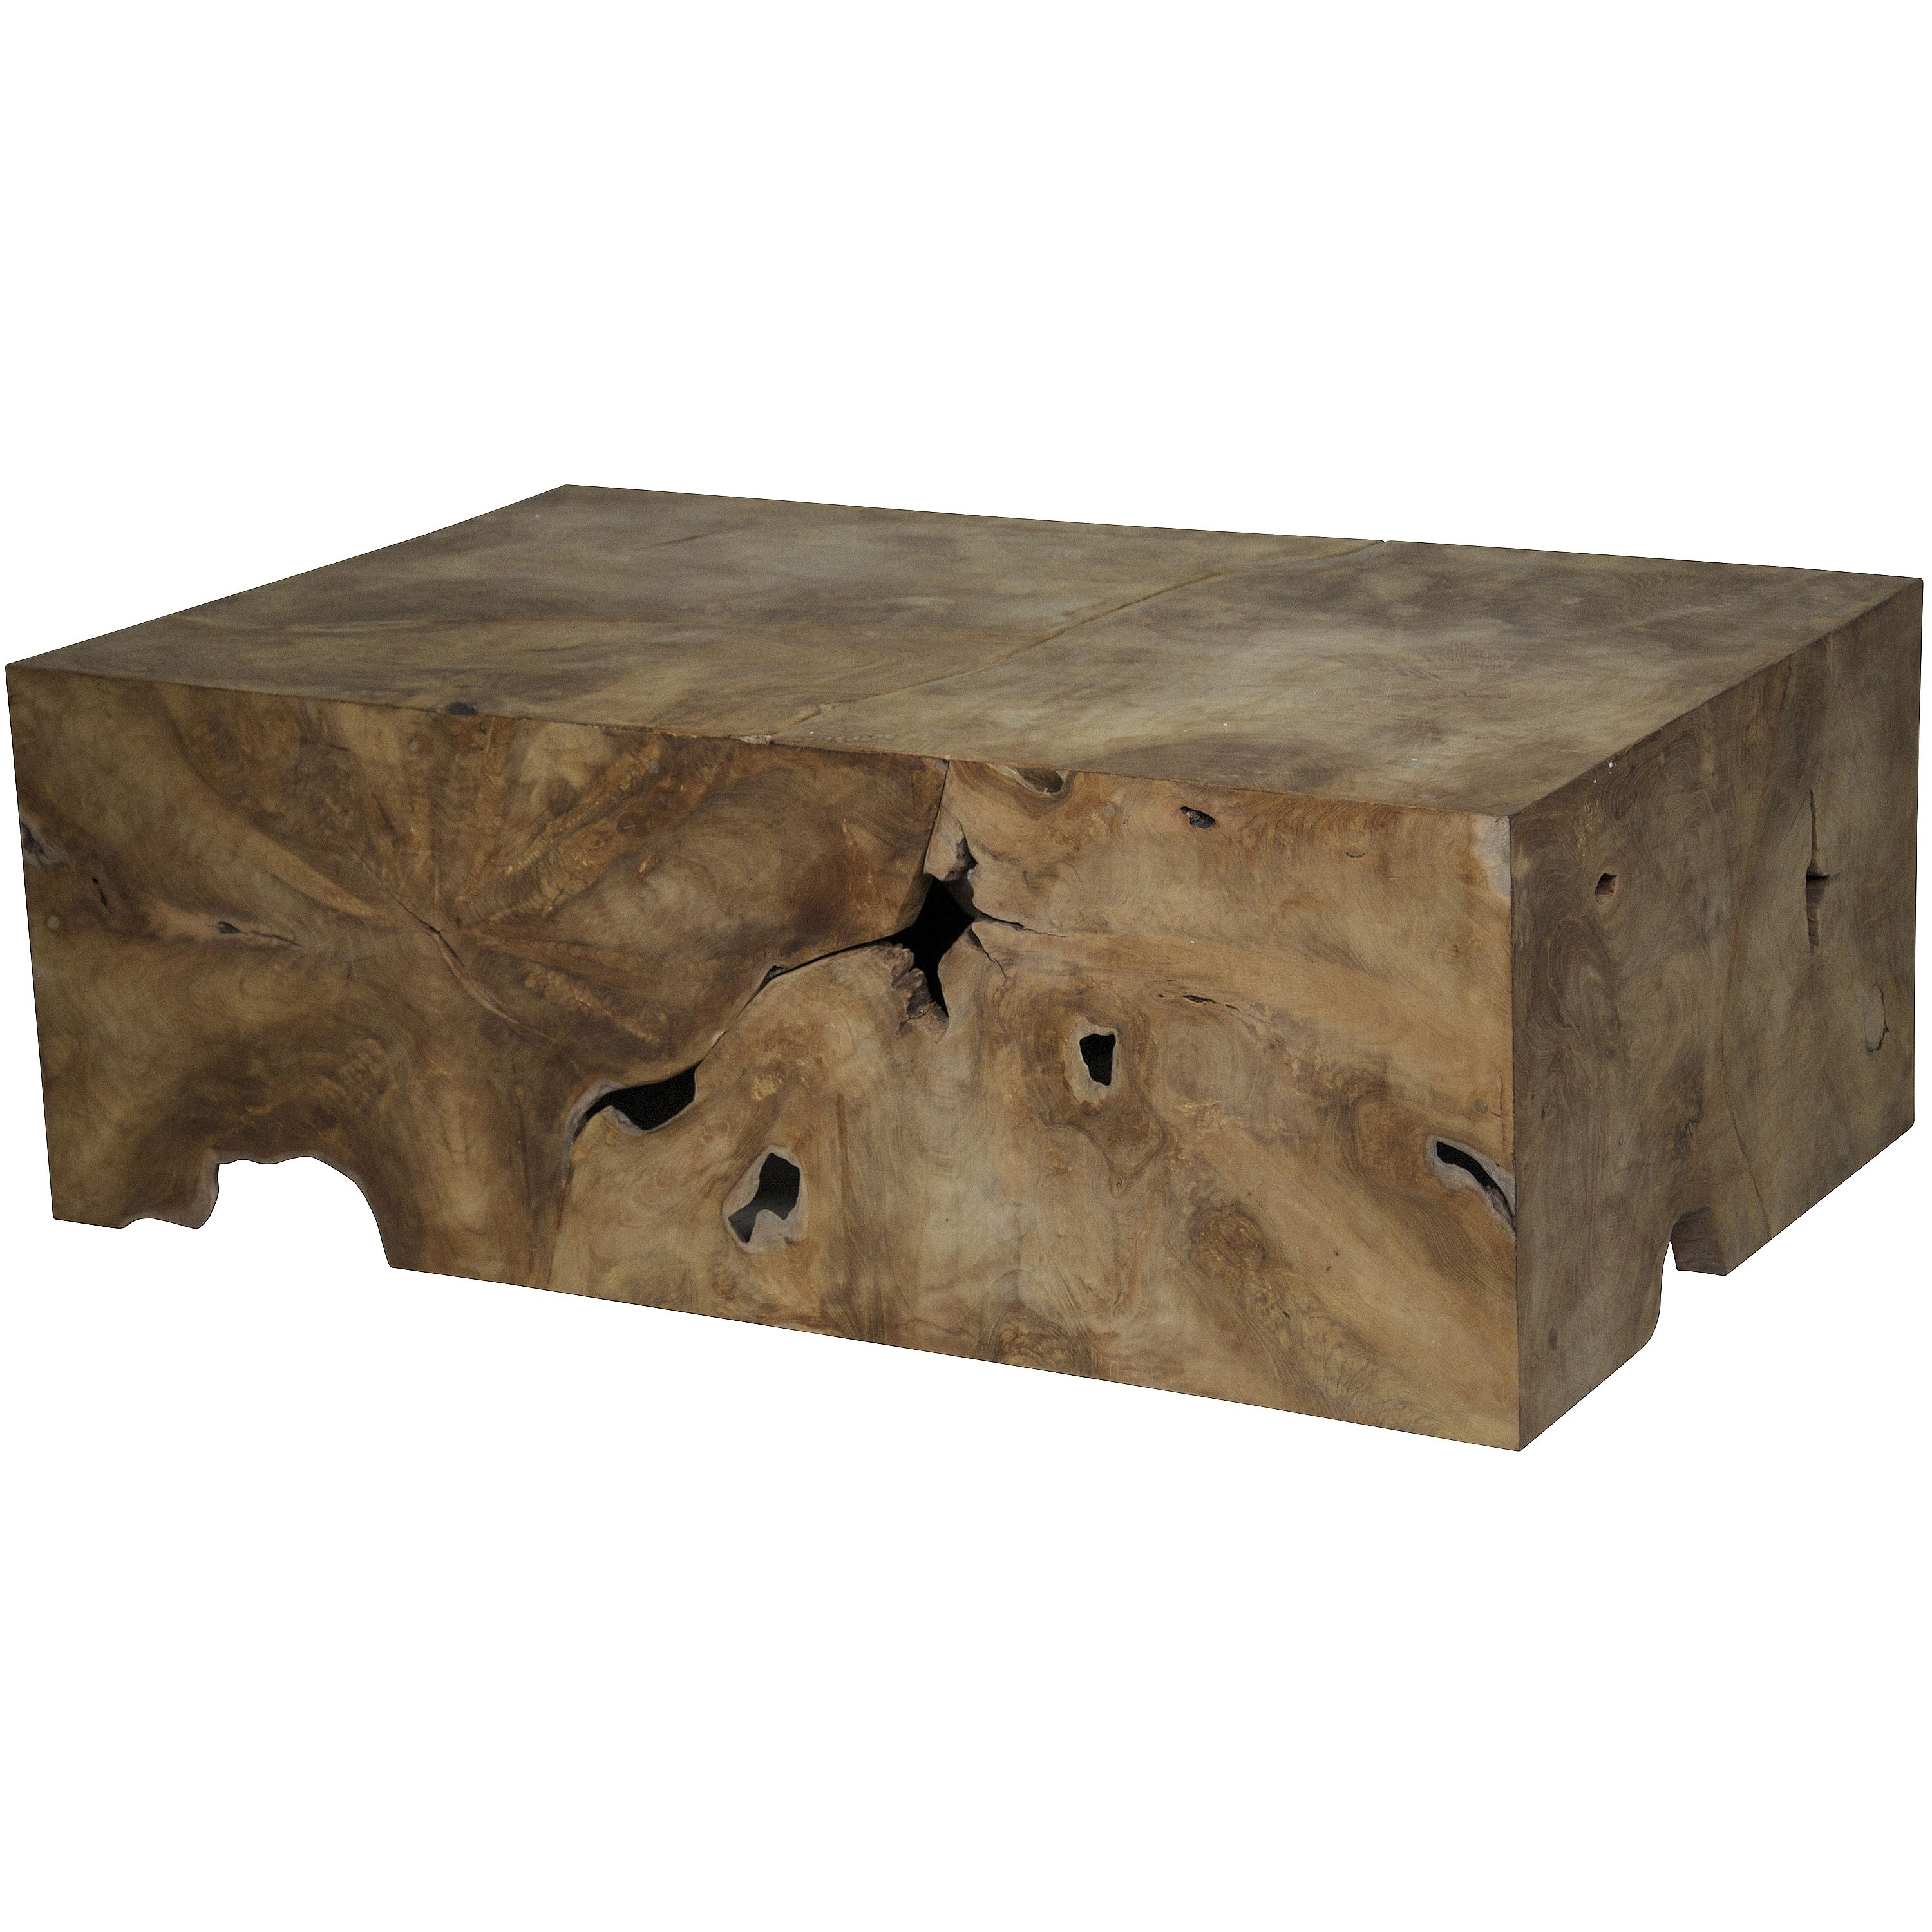 Trendy Oslo Burl Wood Veneer Coffee Tables Inside Perfectly Combing Natural Appeal With A Modern Twist, This Coffee (View 18 of 20)